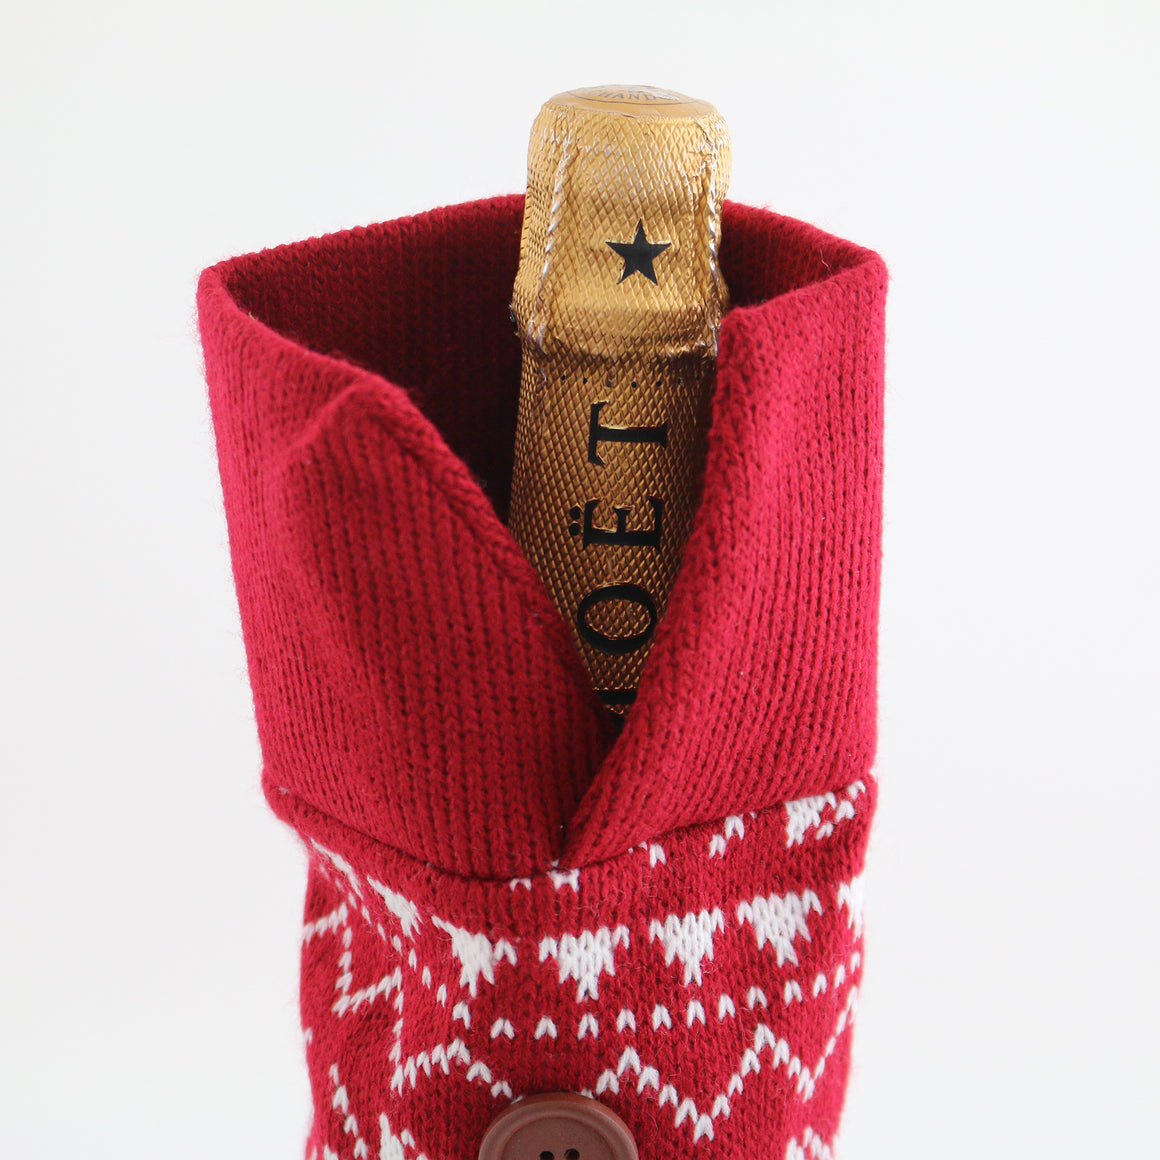 Full Wine Bottle Knit Holiday Sweater